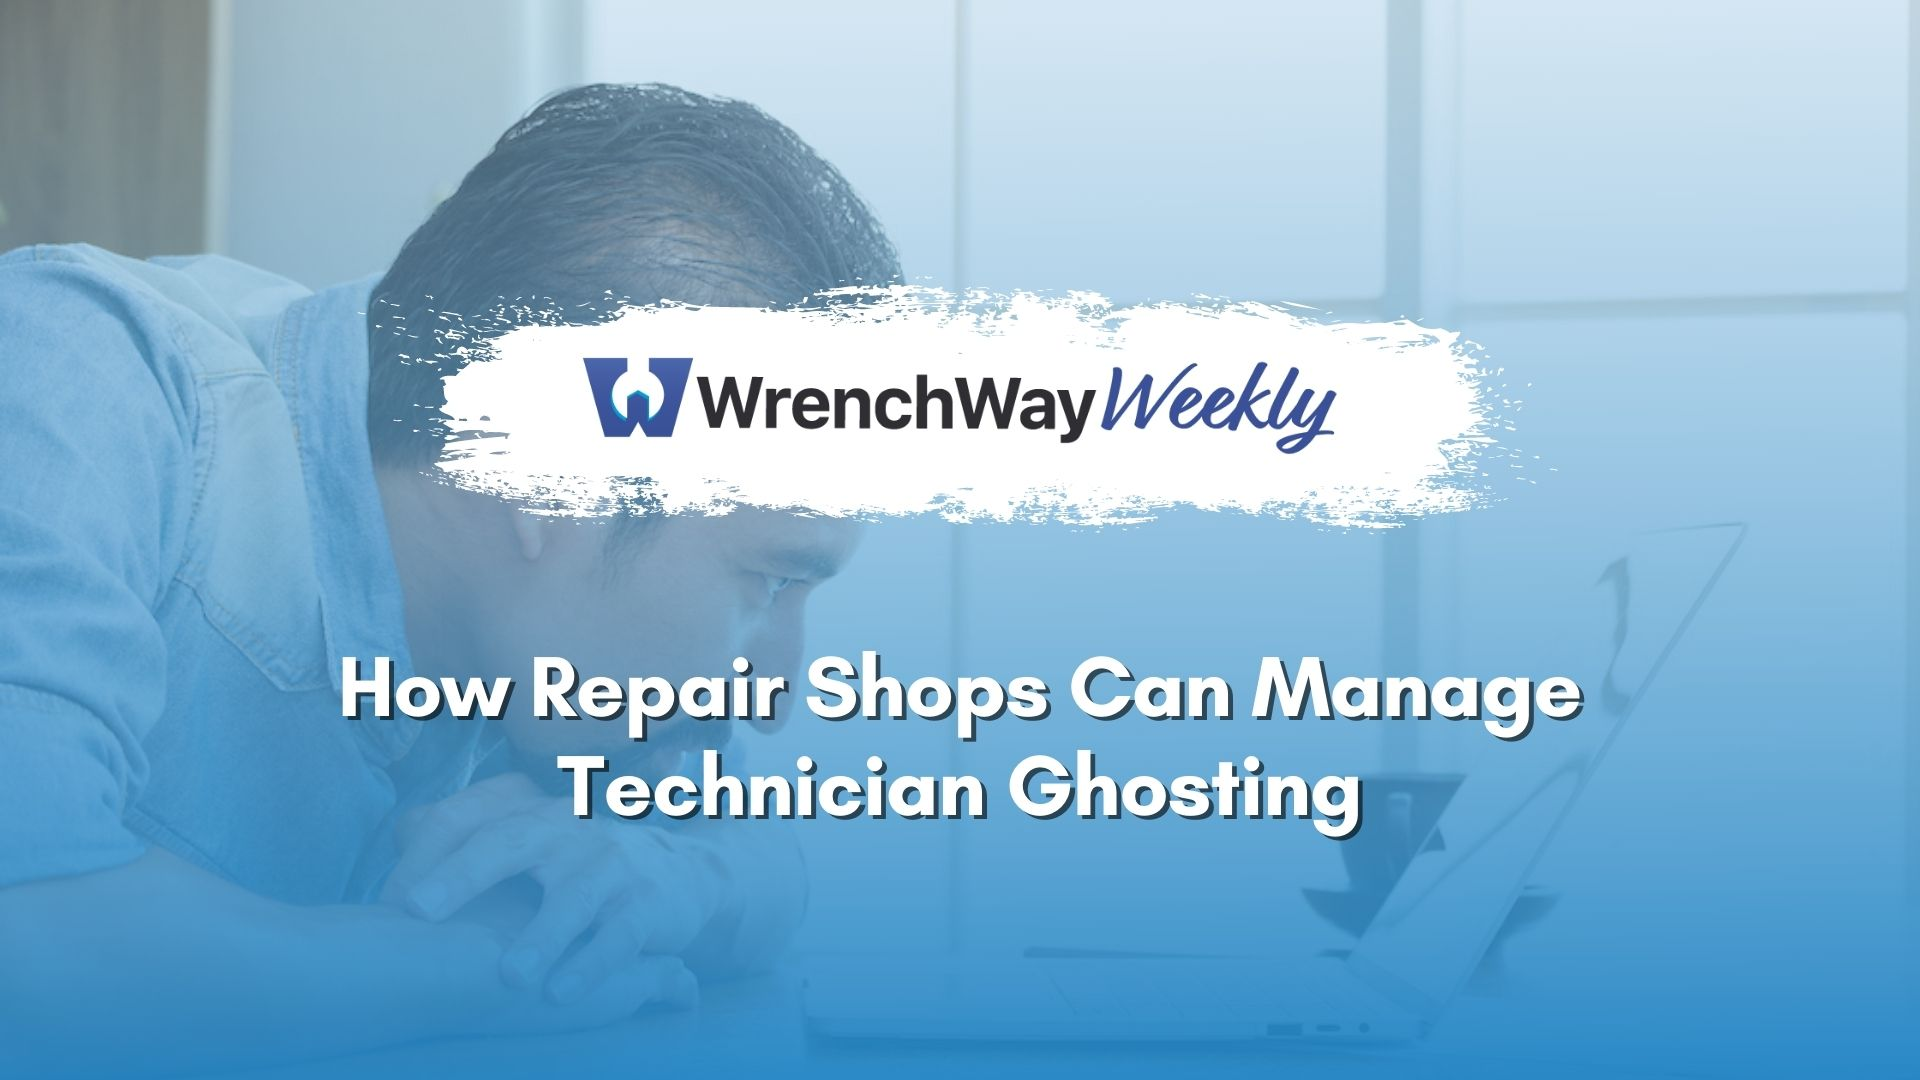 WrenchWay Weekly episode how repair shops can manage technician ghosting